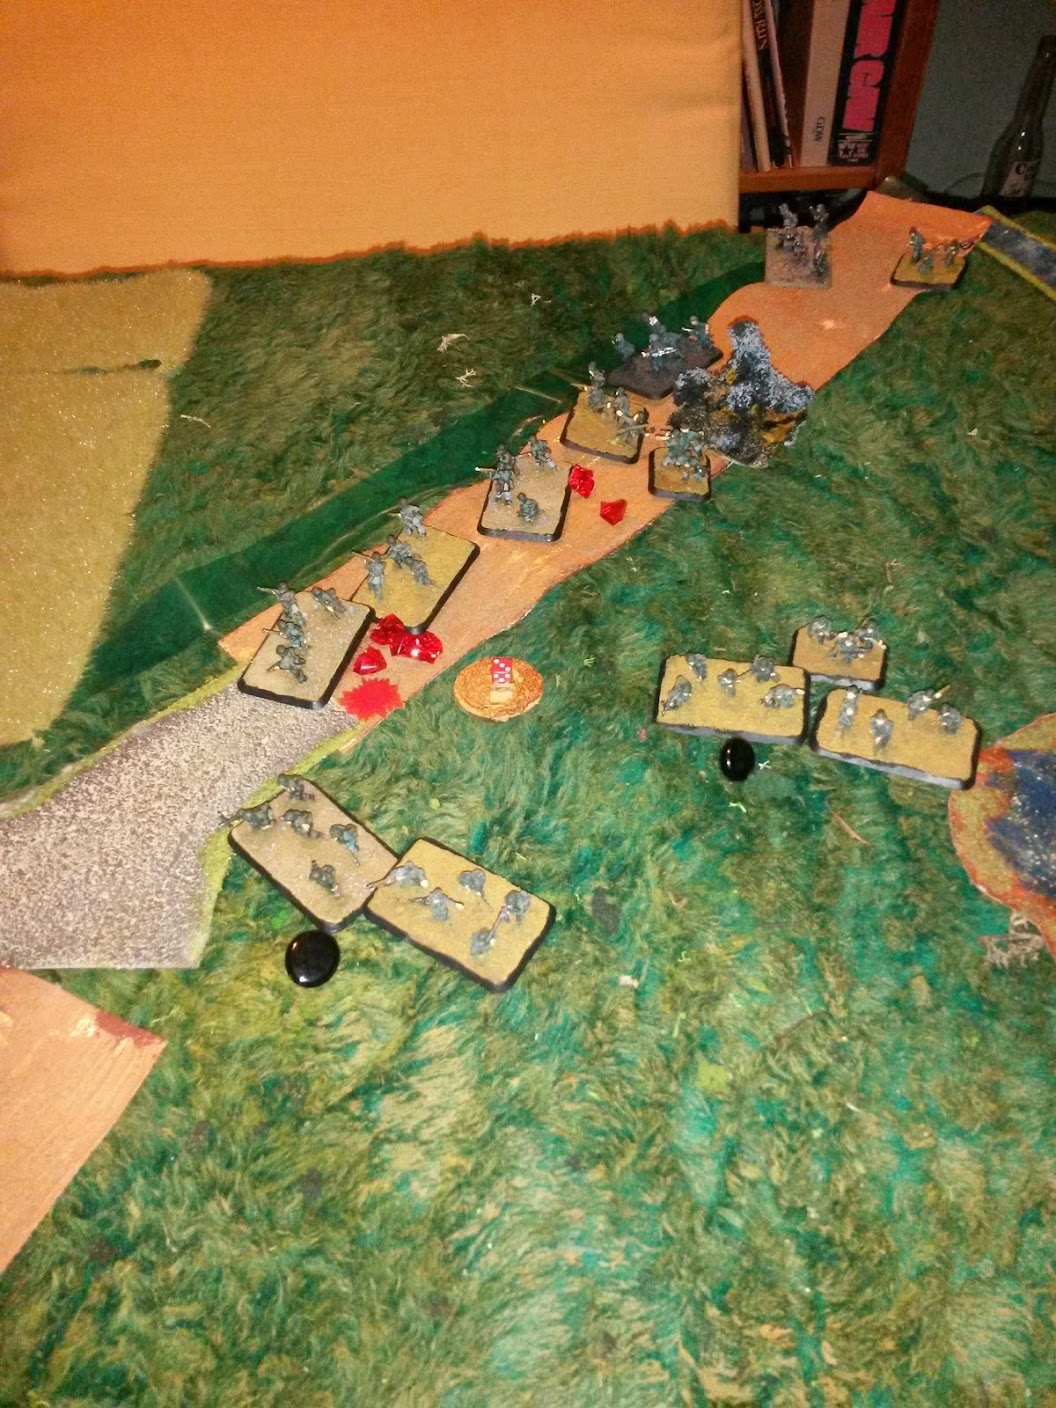 And artillery joins in. At this point, it looks very bad for Germans. But looks deceive, as everything is going as planned.